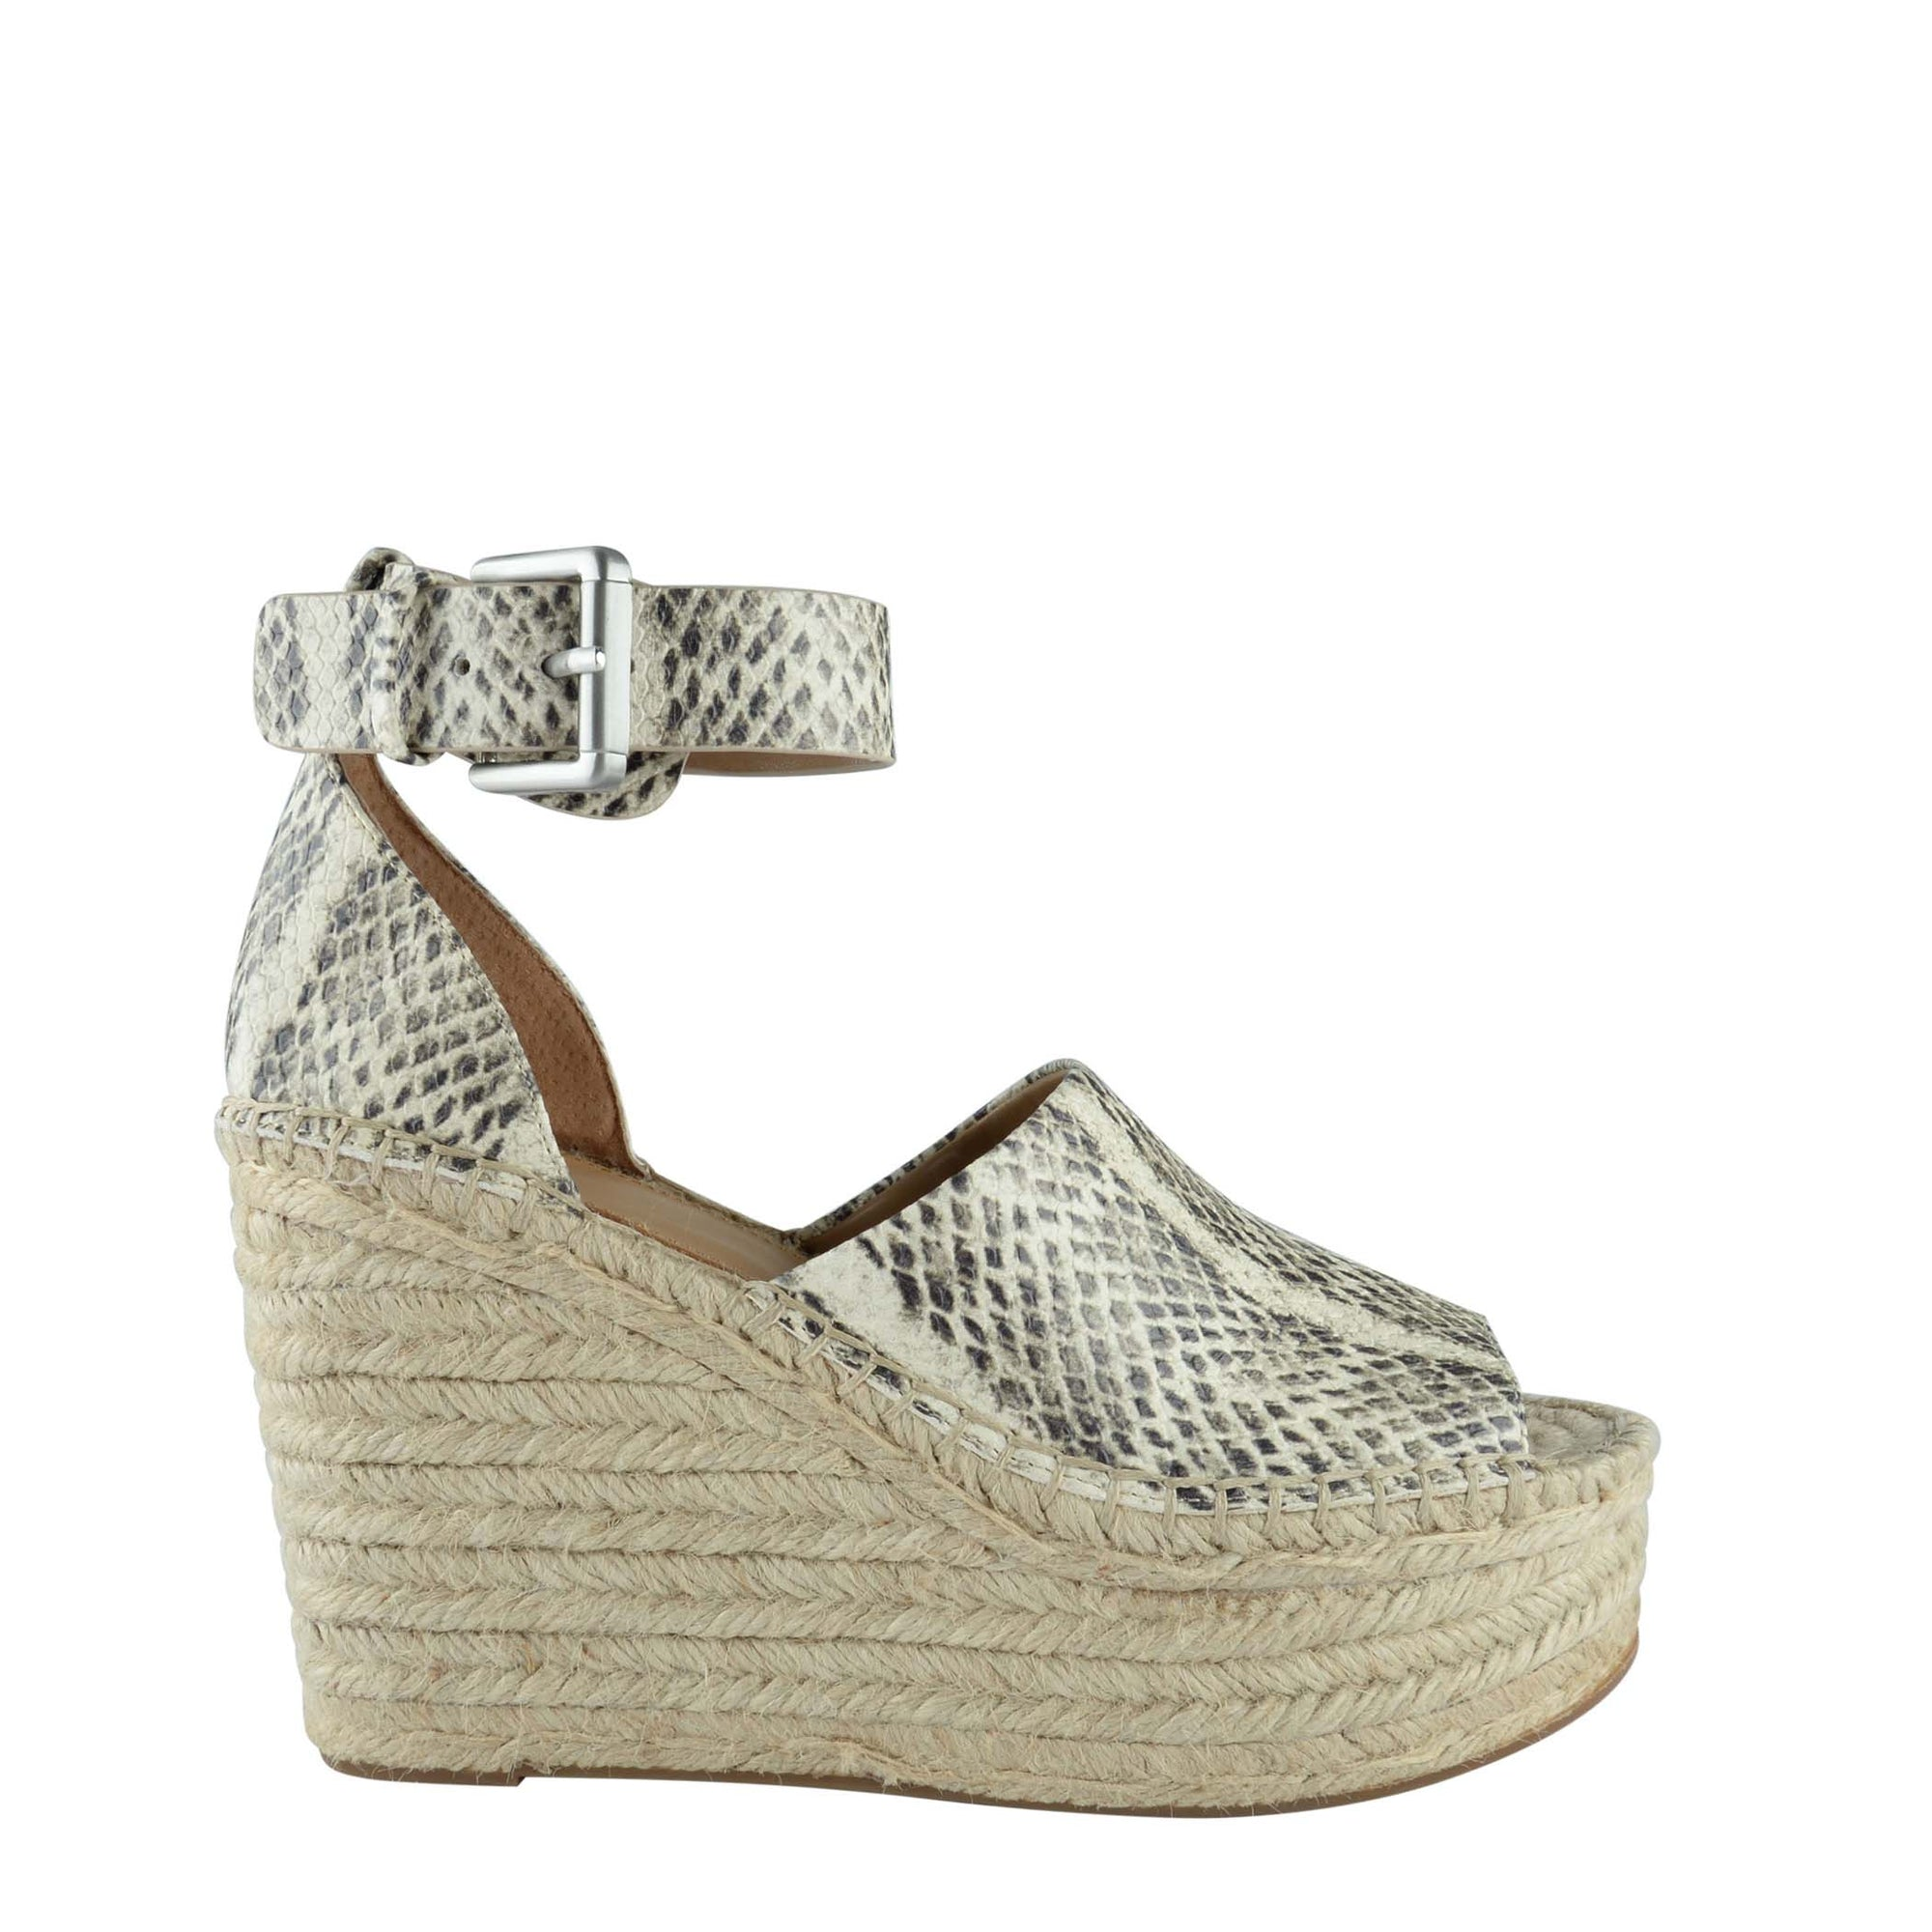 Adalyn Espadrille Wedge Sandal